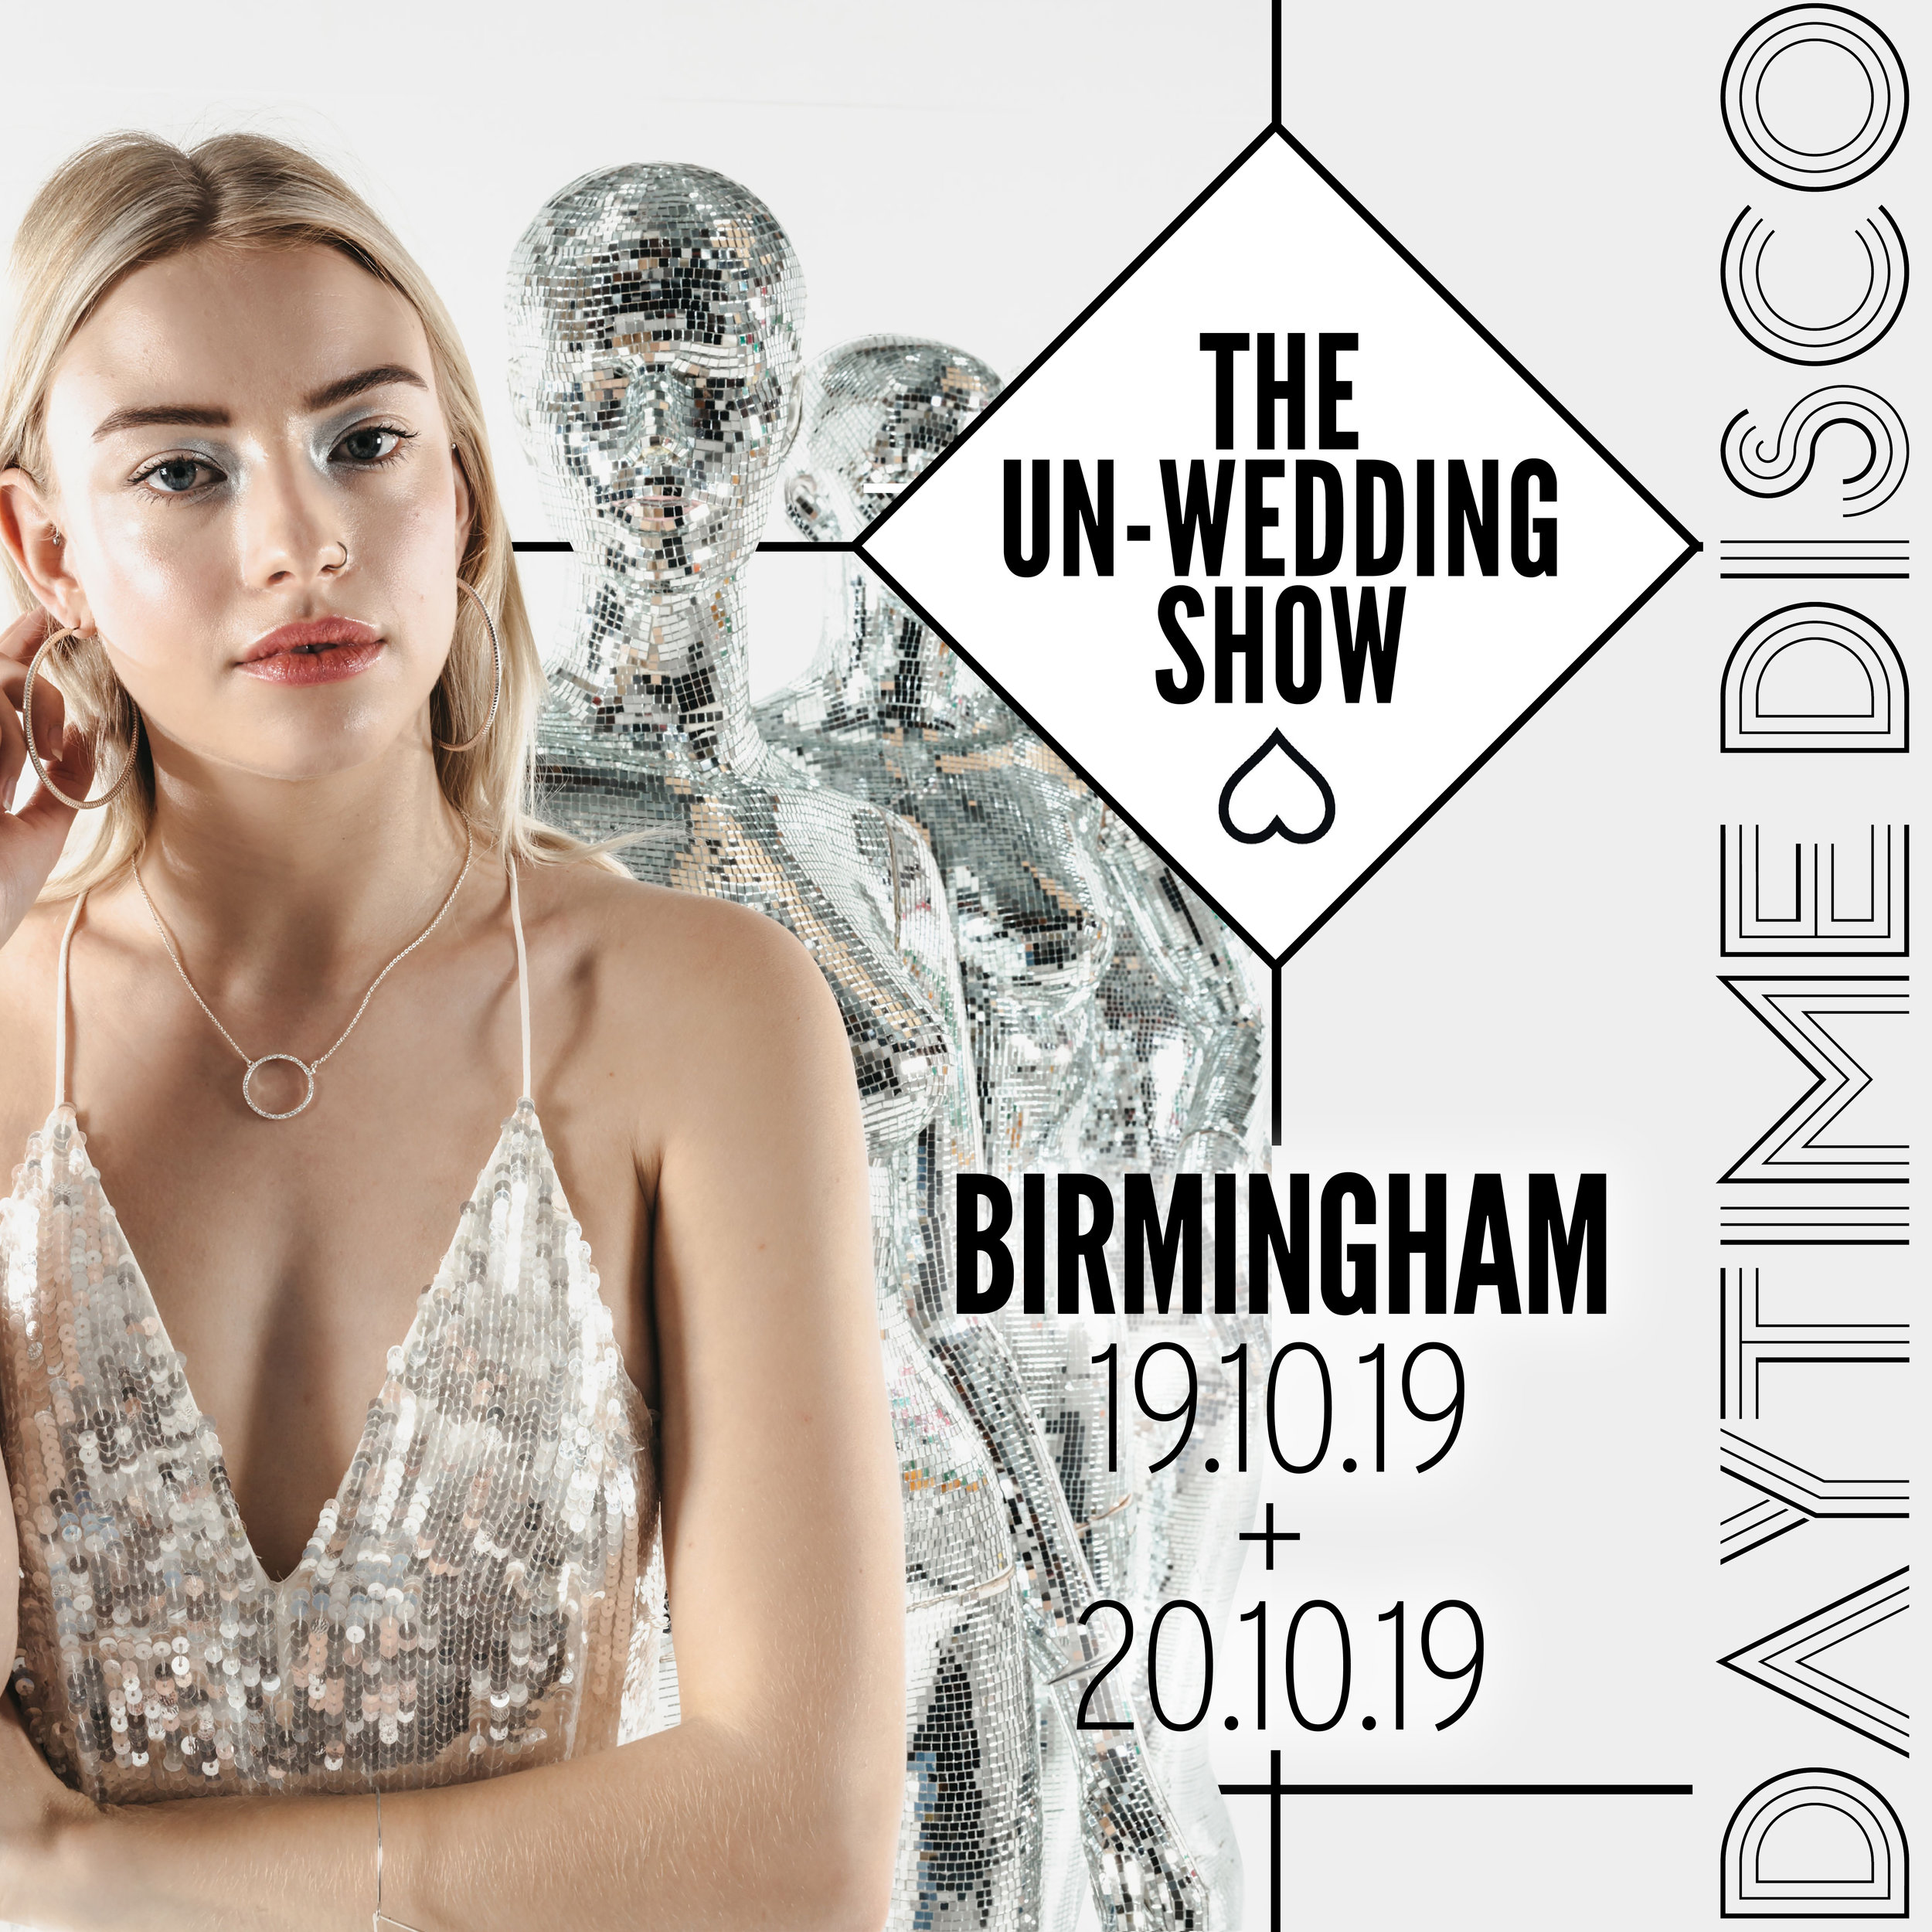 THE UN-WEDDING SHOW BIRMINGHAM